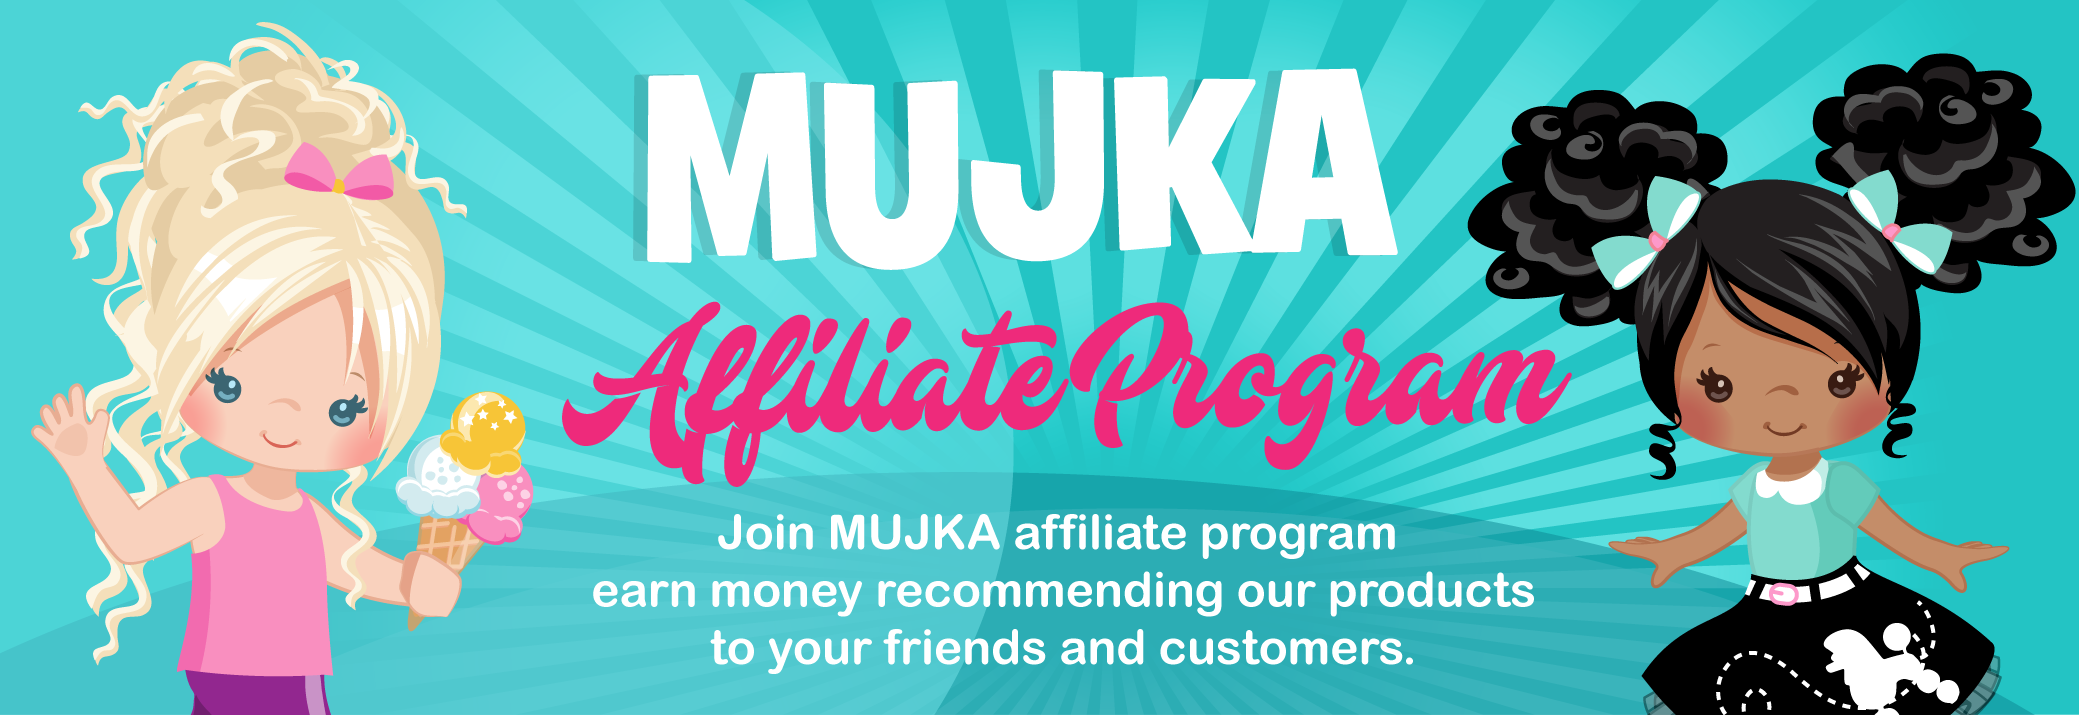 Mujka Cliparts Affiliation program